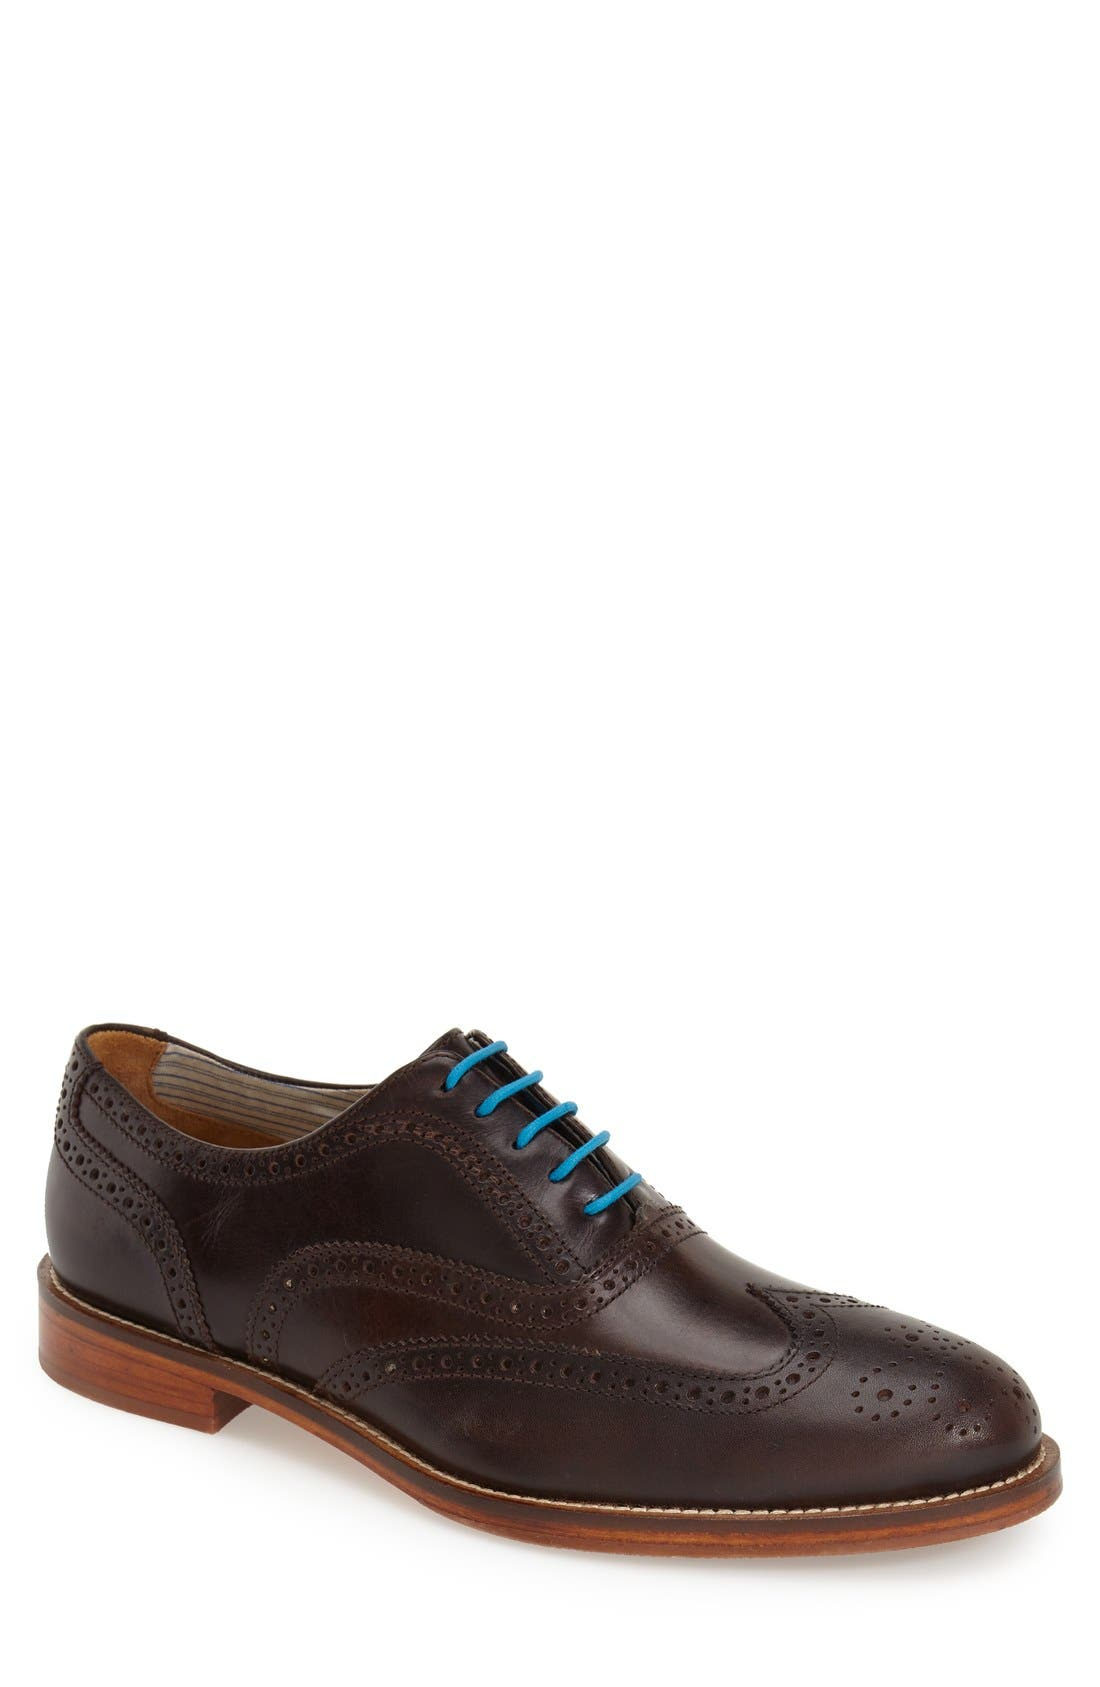 J SHOES 'Charlie Plus' Wingtip Oxford